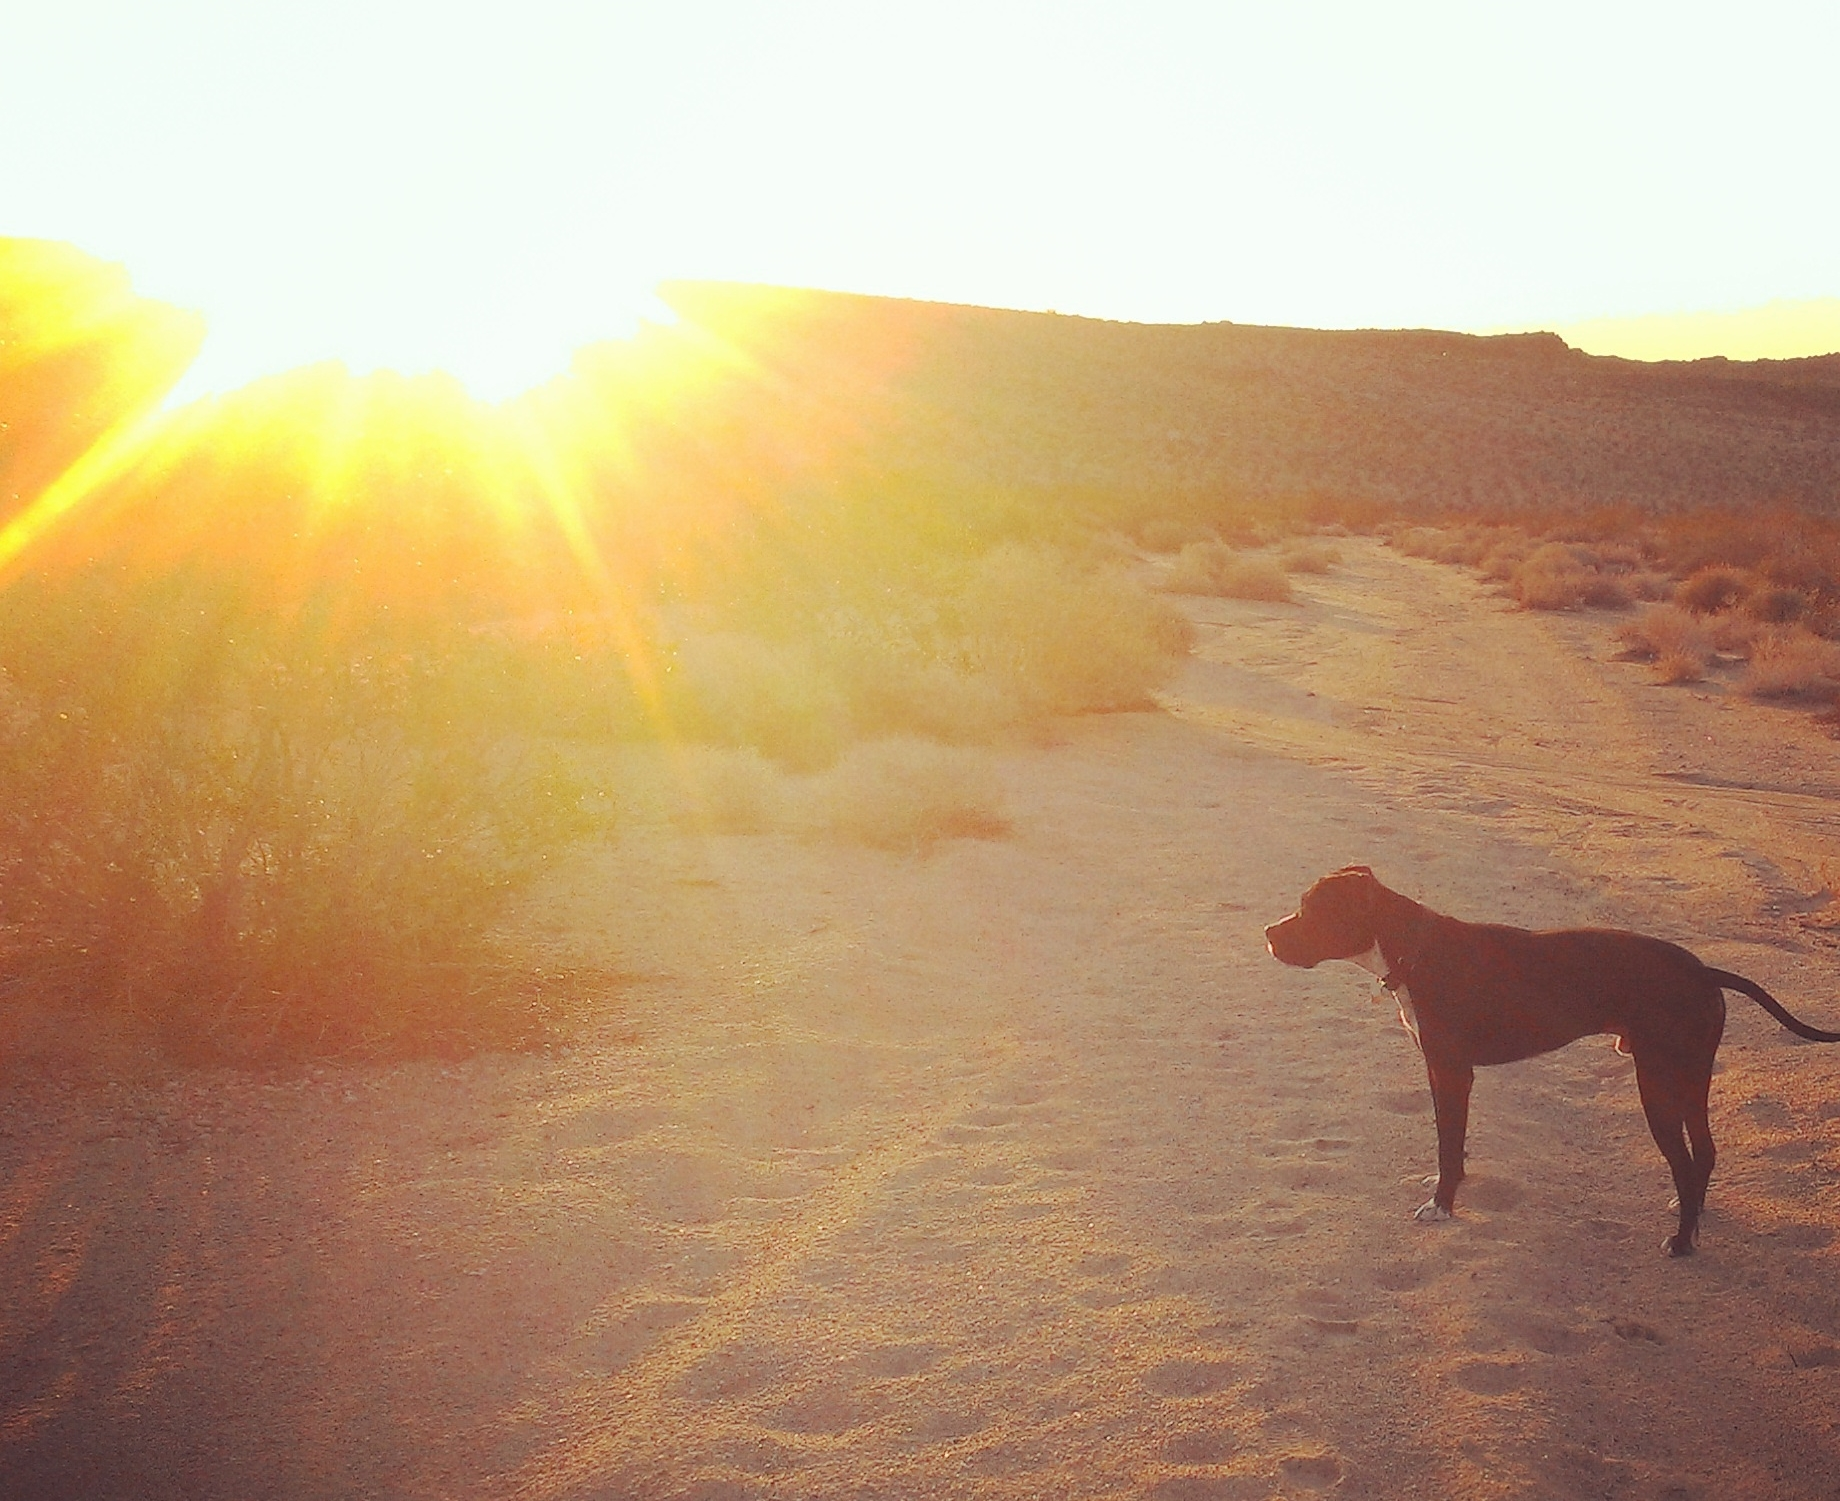 Bodhi at daybreak, photo by me